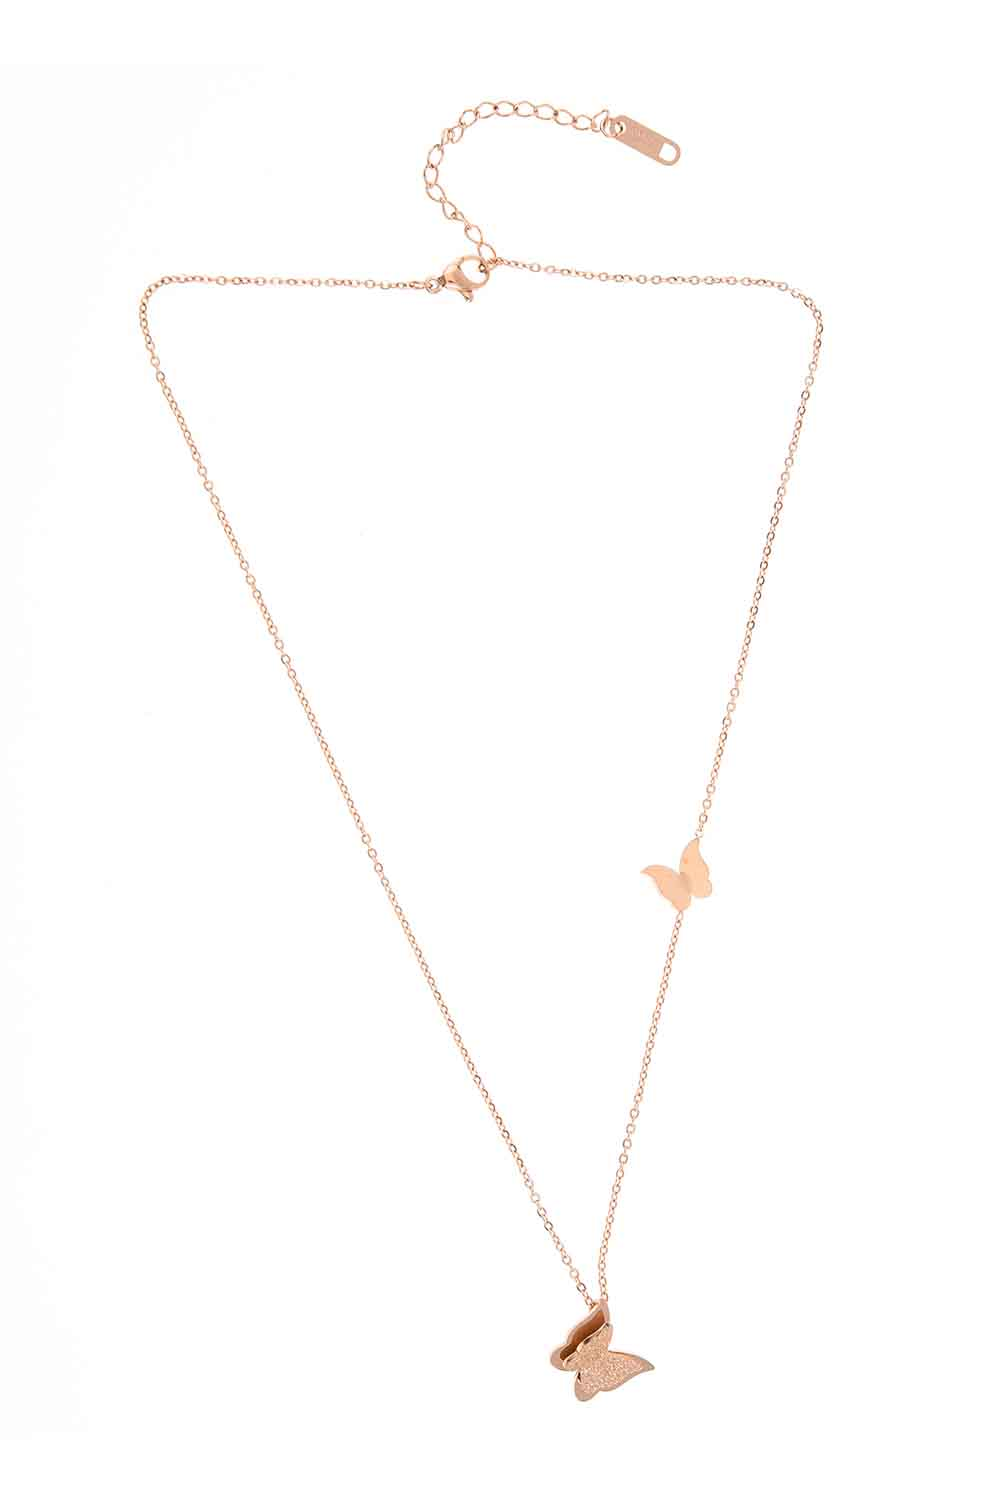 MIZALLE Butterfly Steel Necklace (St) (1)